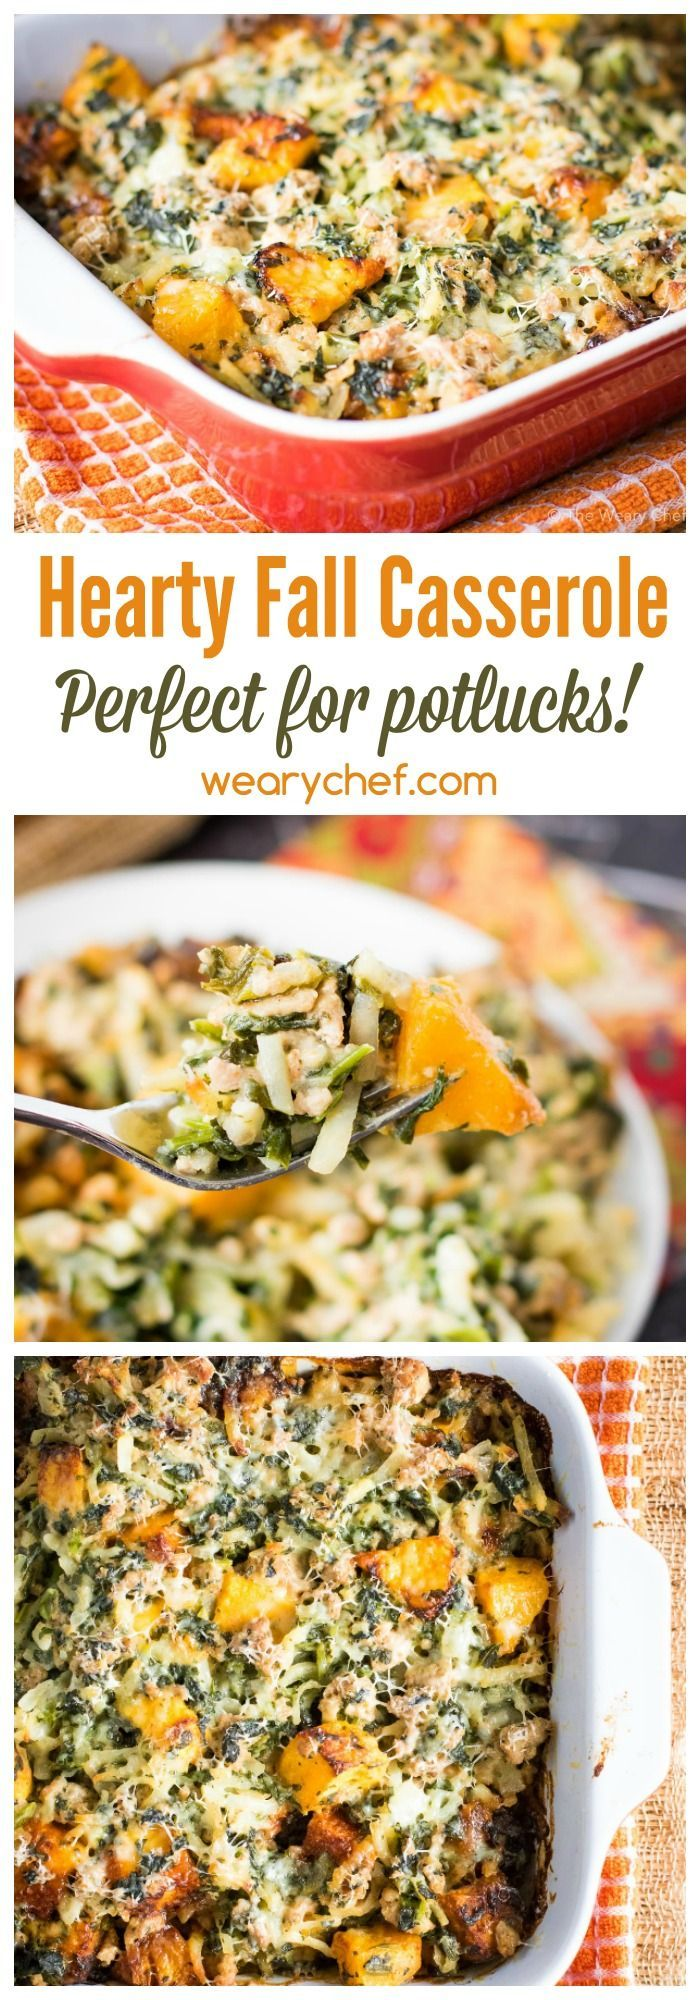 Fall Potluck Casserole with Turkey and Squash - The Weary Chef